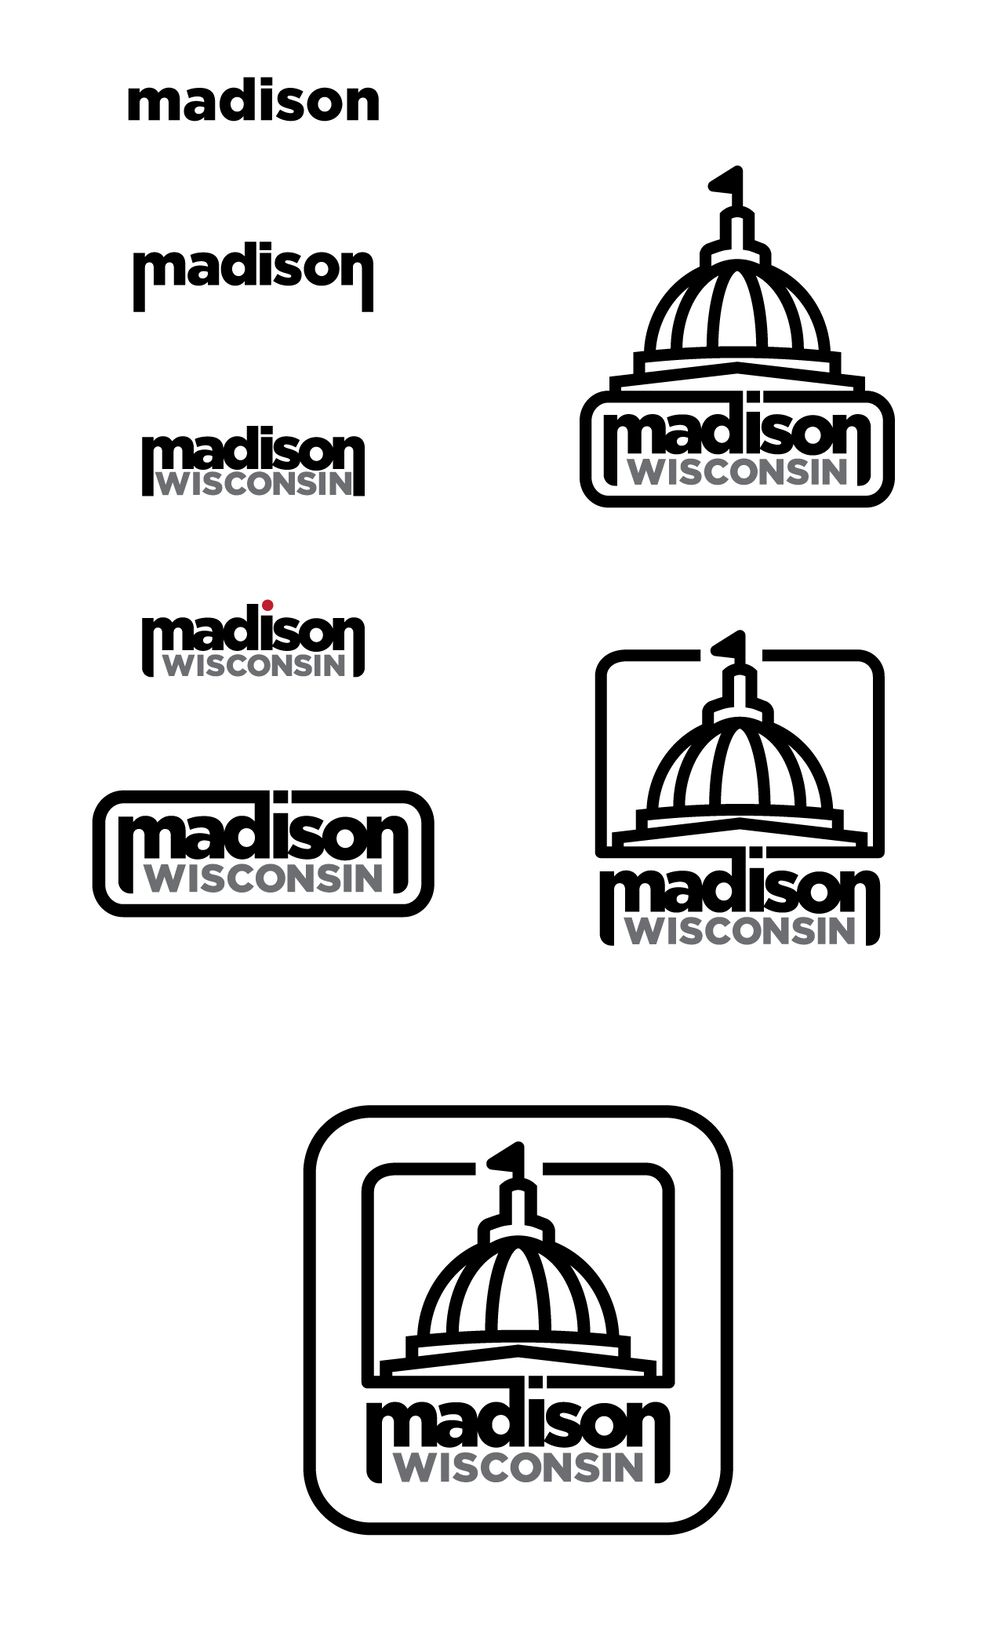 Madison, WI - image 1 - student project